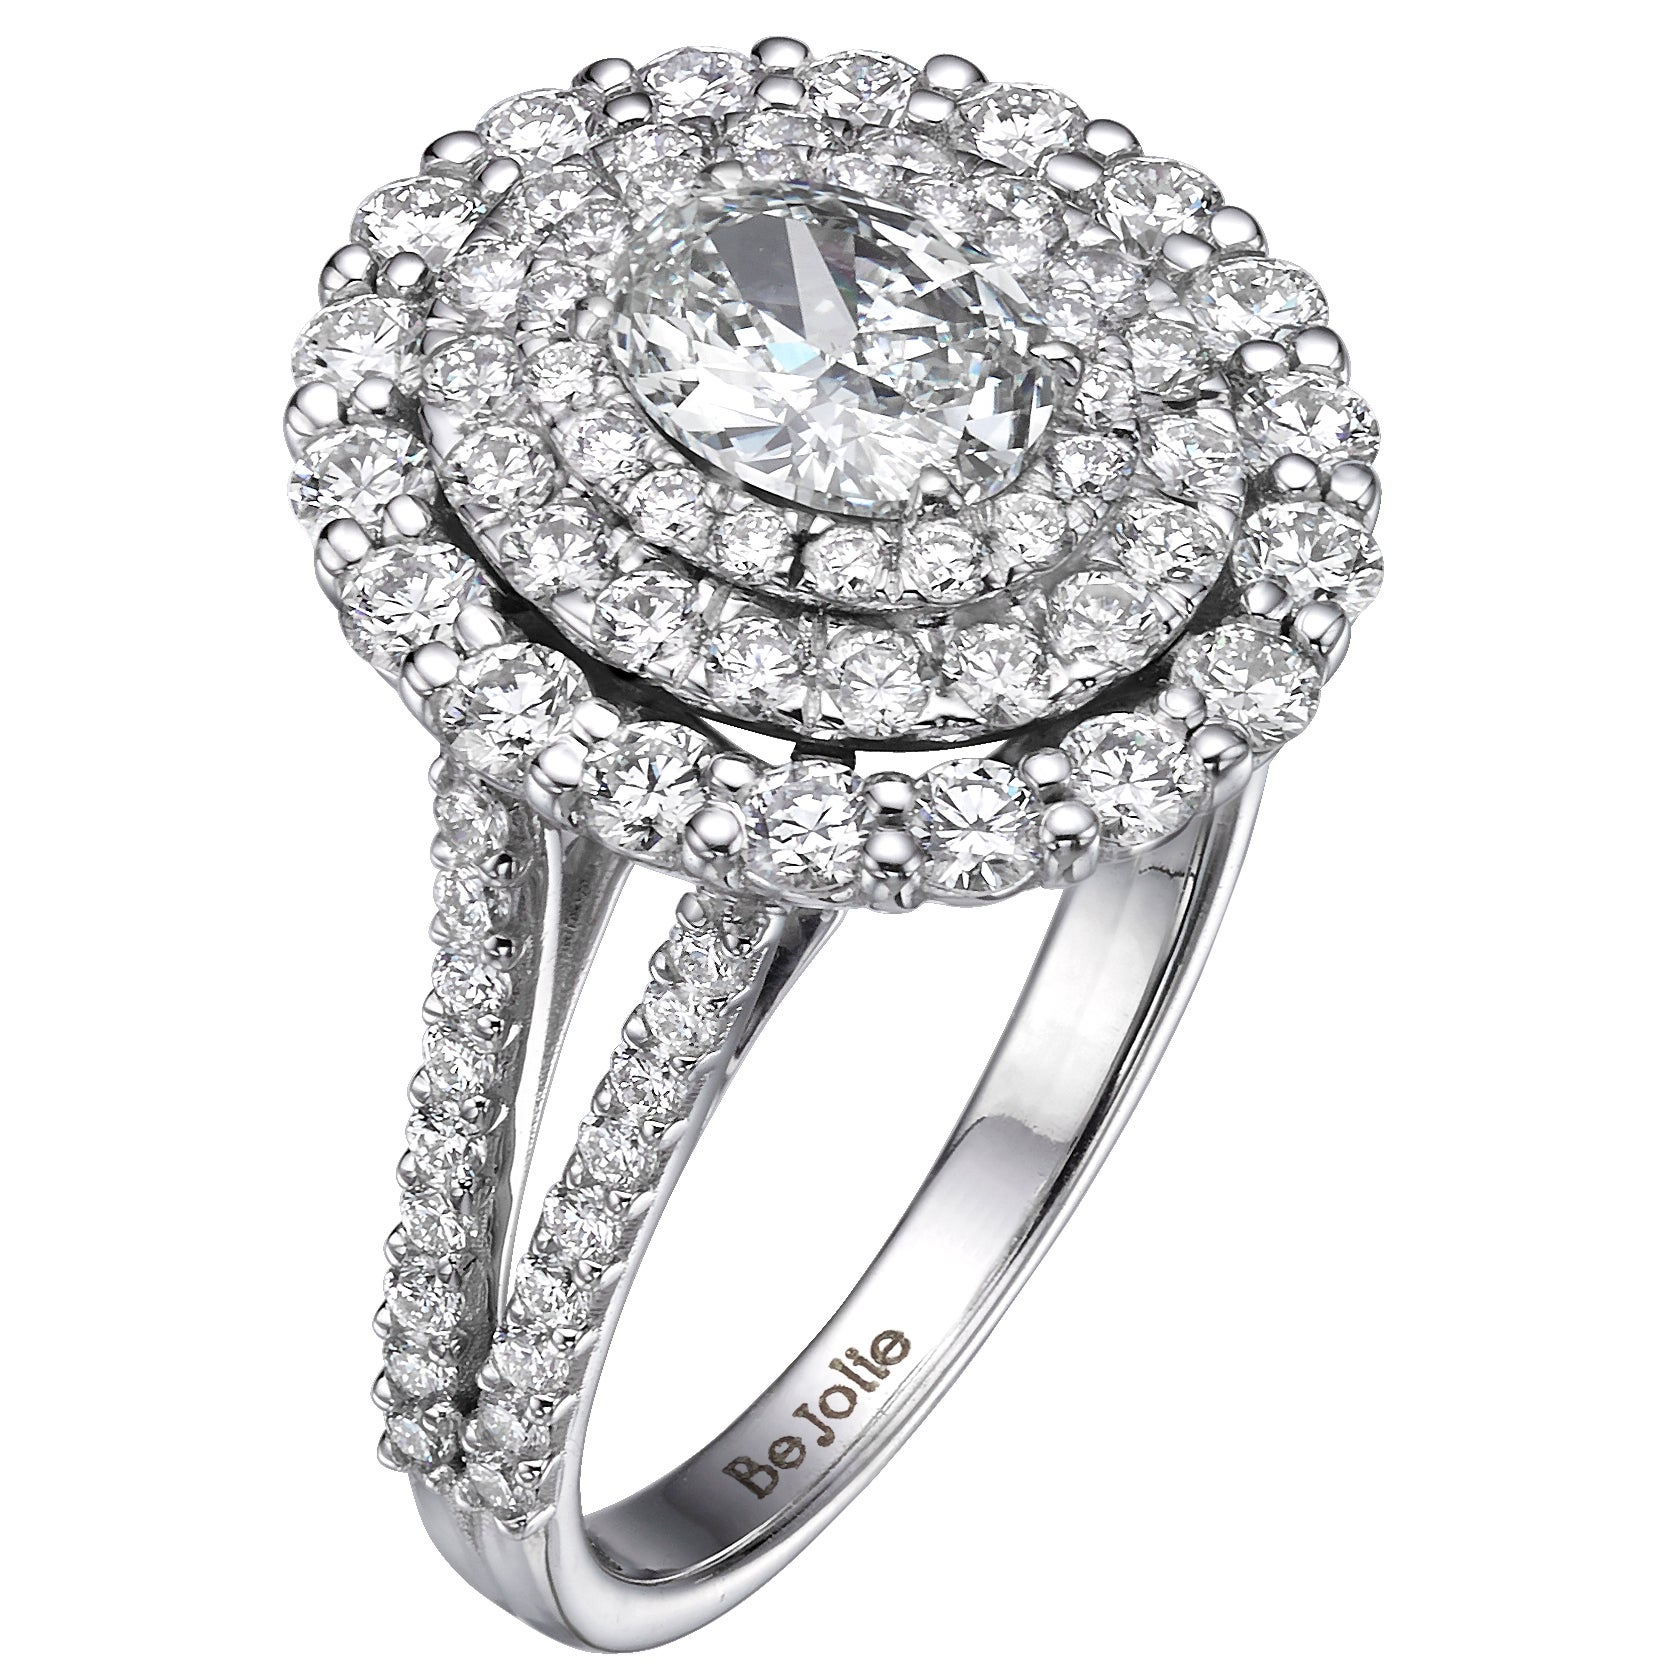 GIA Certified 2.14 Carat Oval Cut Diamond Triple Halo Engagement Ring G / VVS1